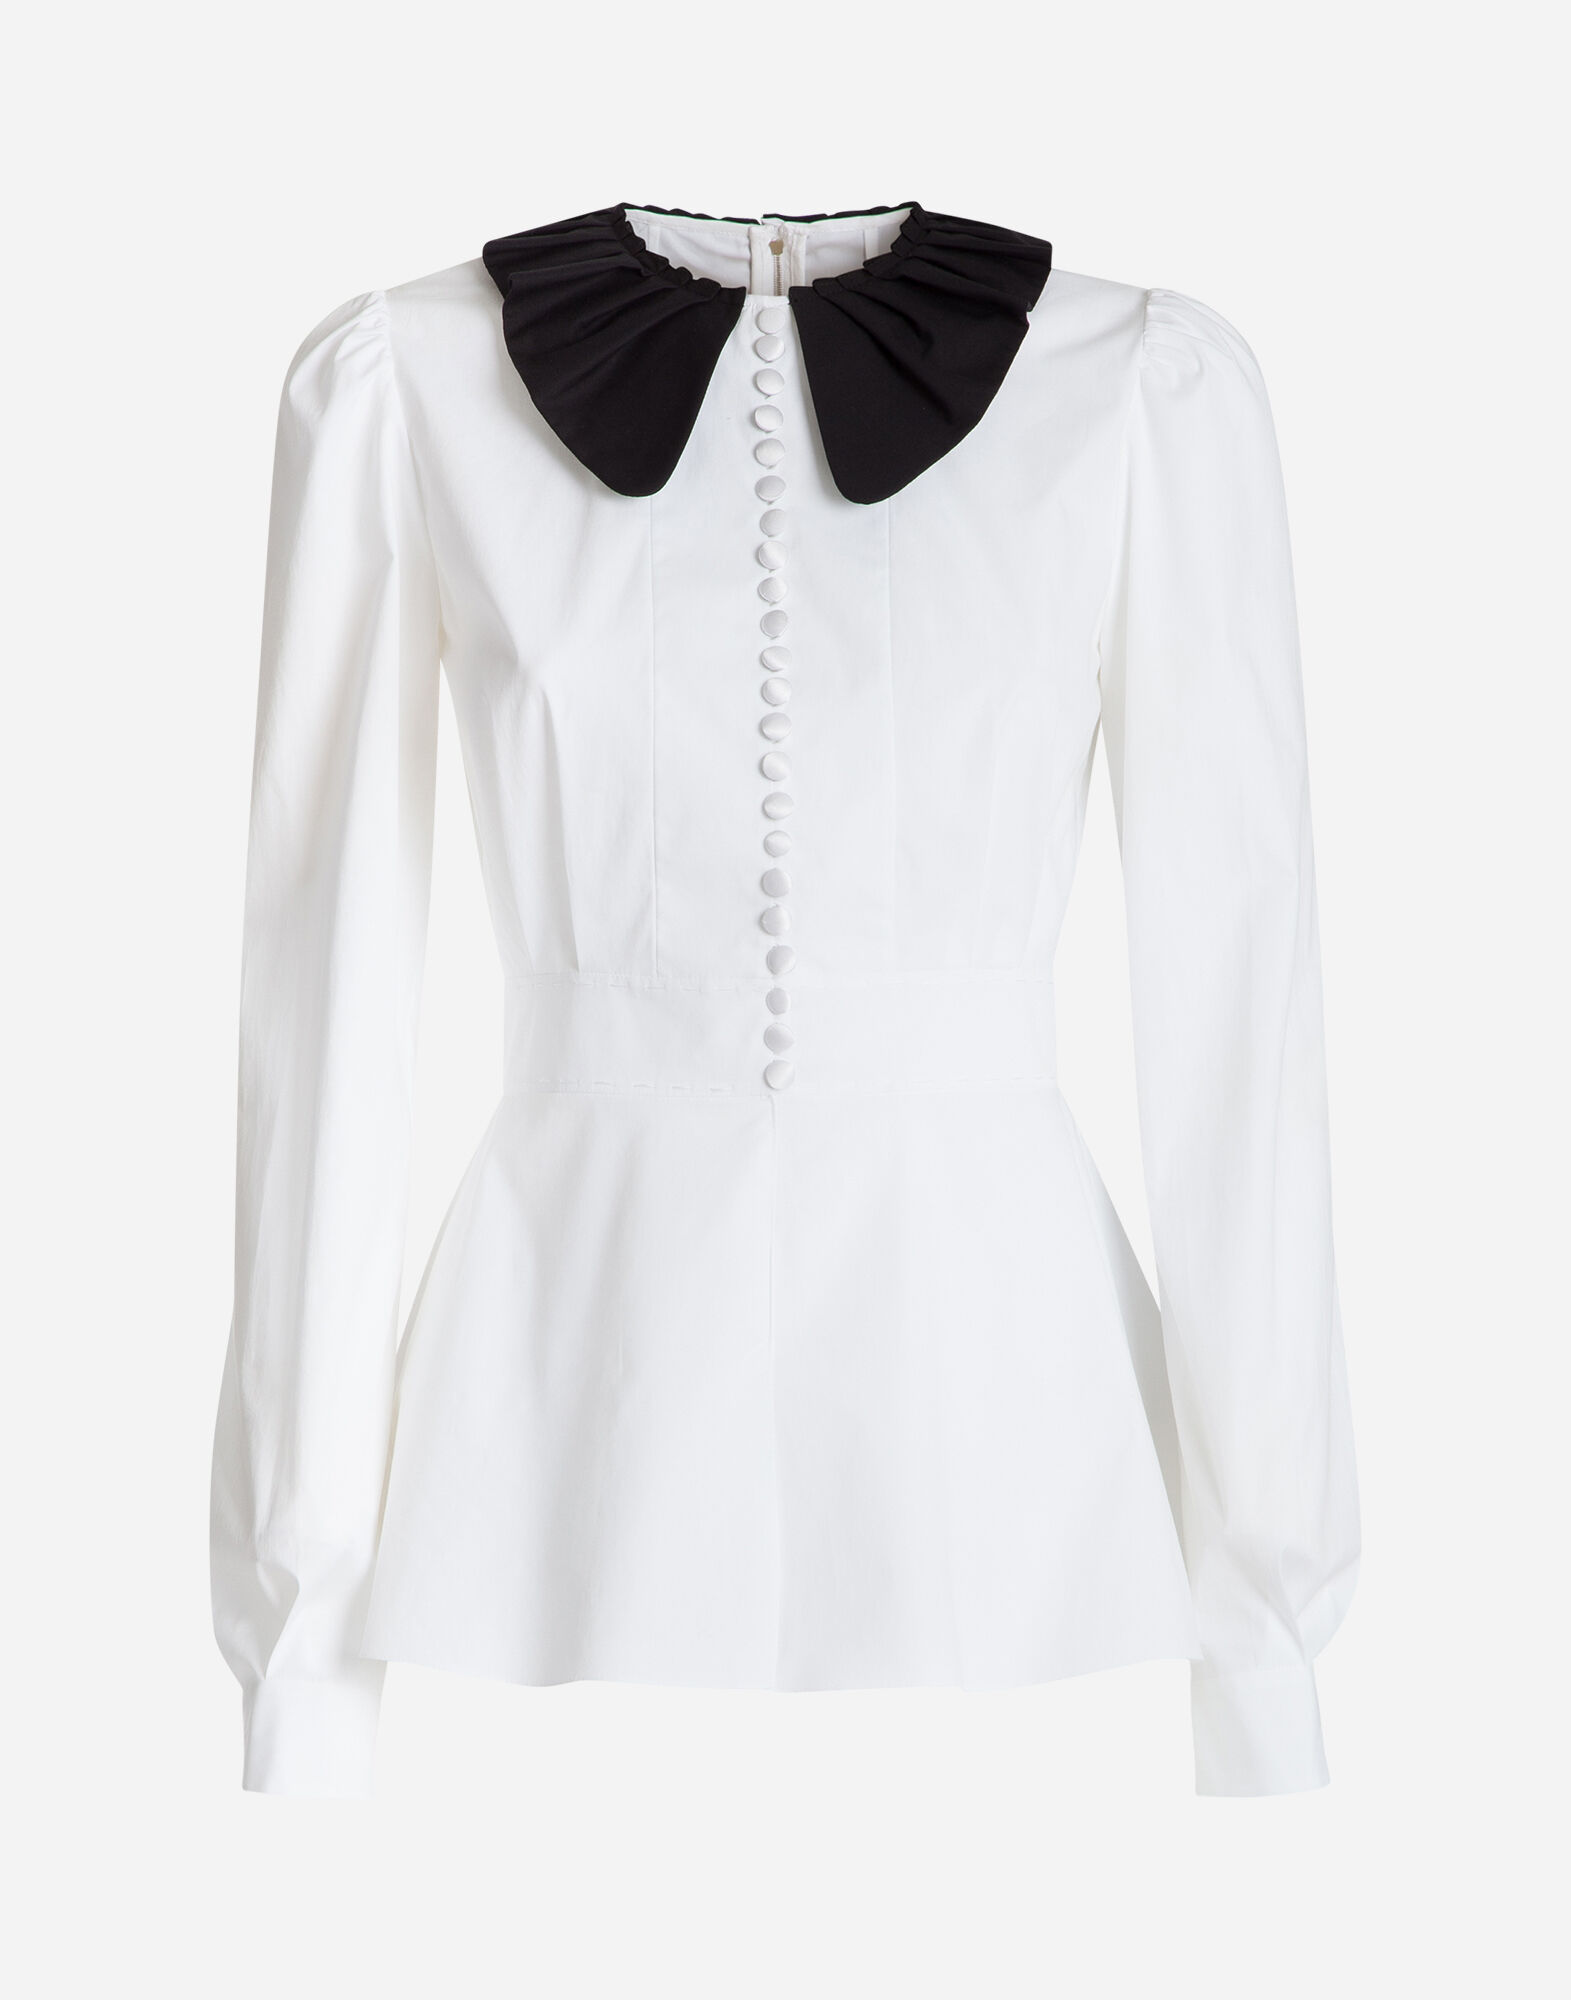 COTTON TOP WITH COLLAR